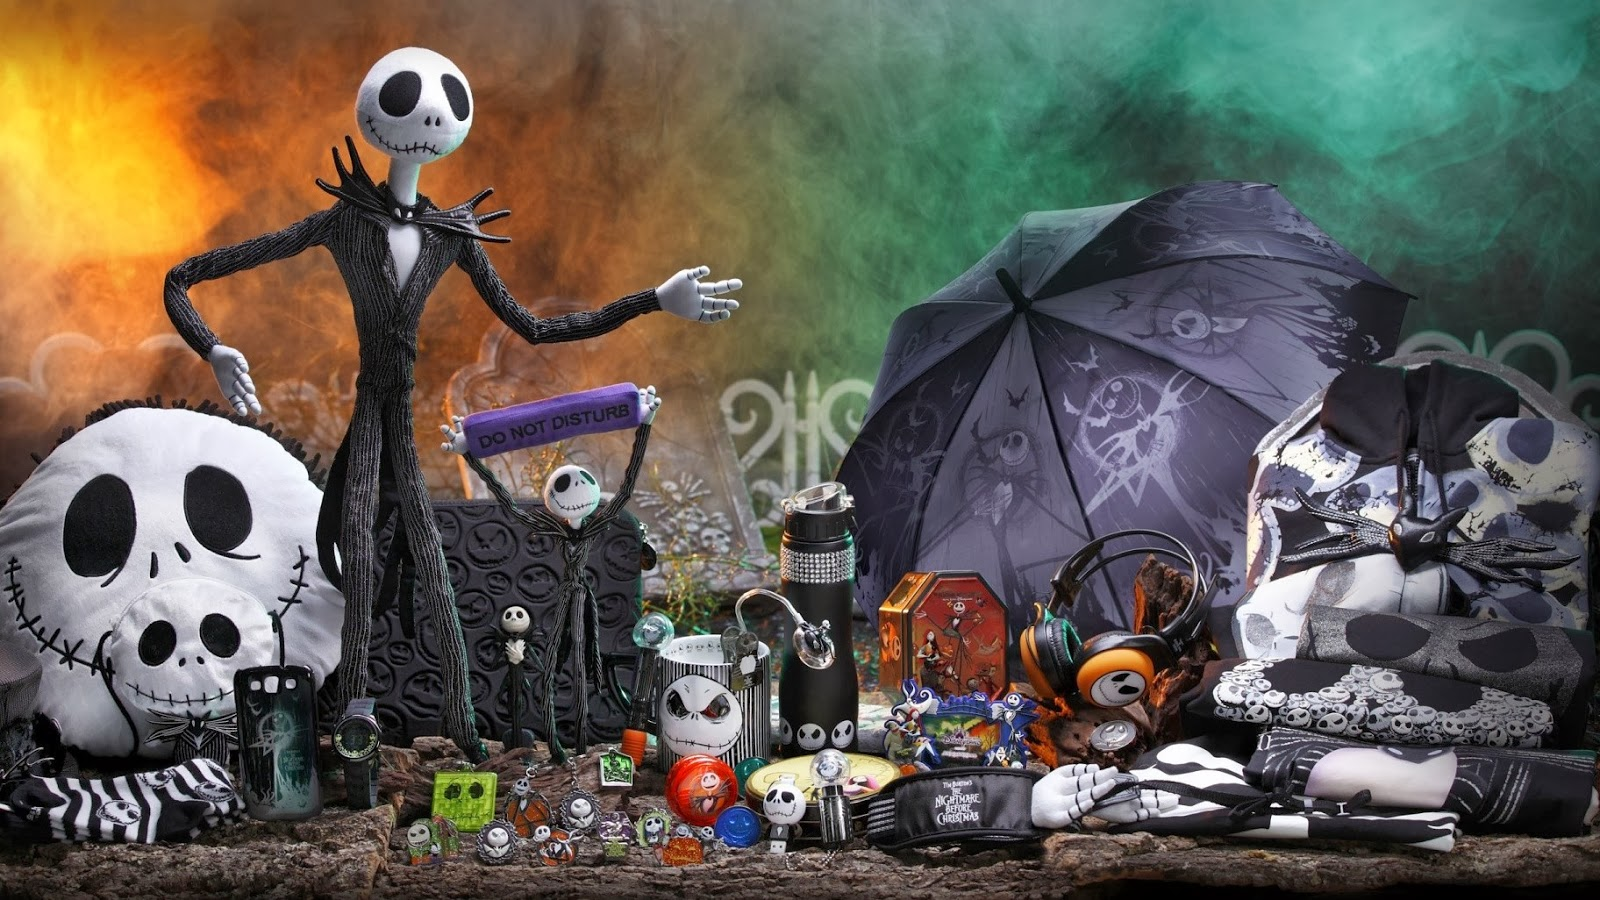 nightmare before christmas superb collection of hd wallpapers - Nightmare Before Christmas Backgrounds